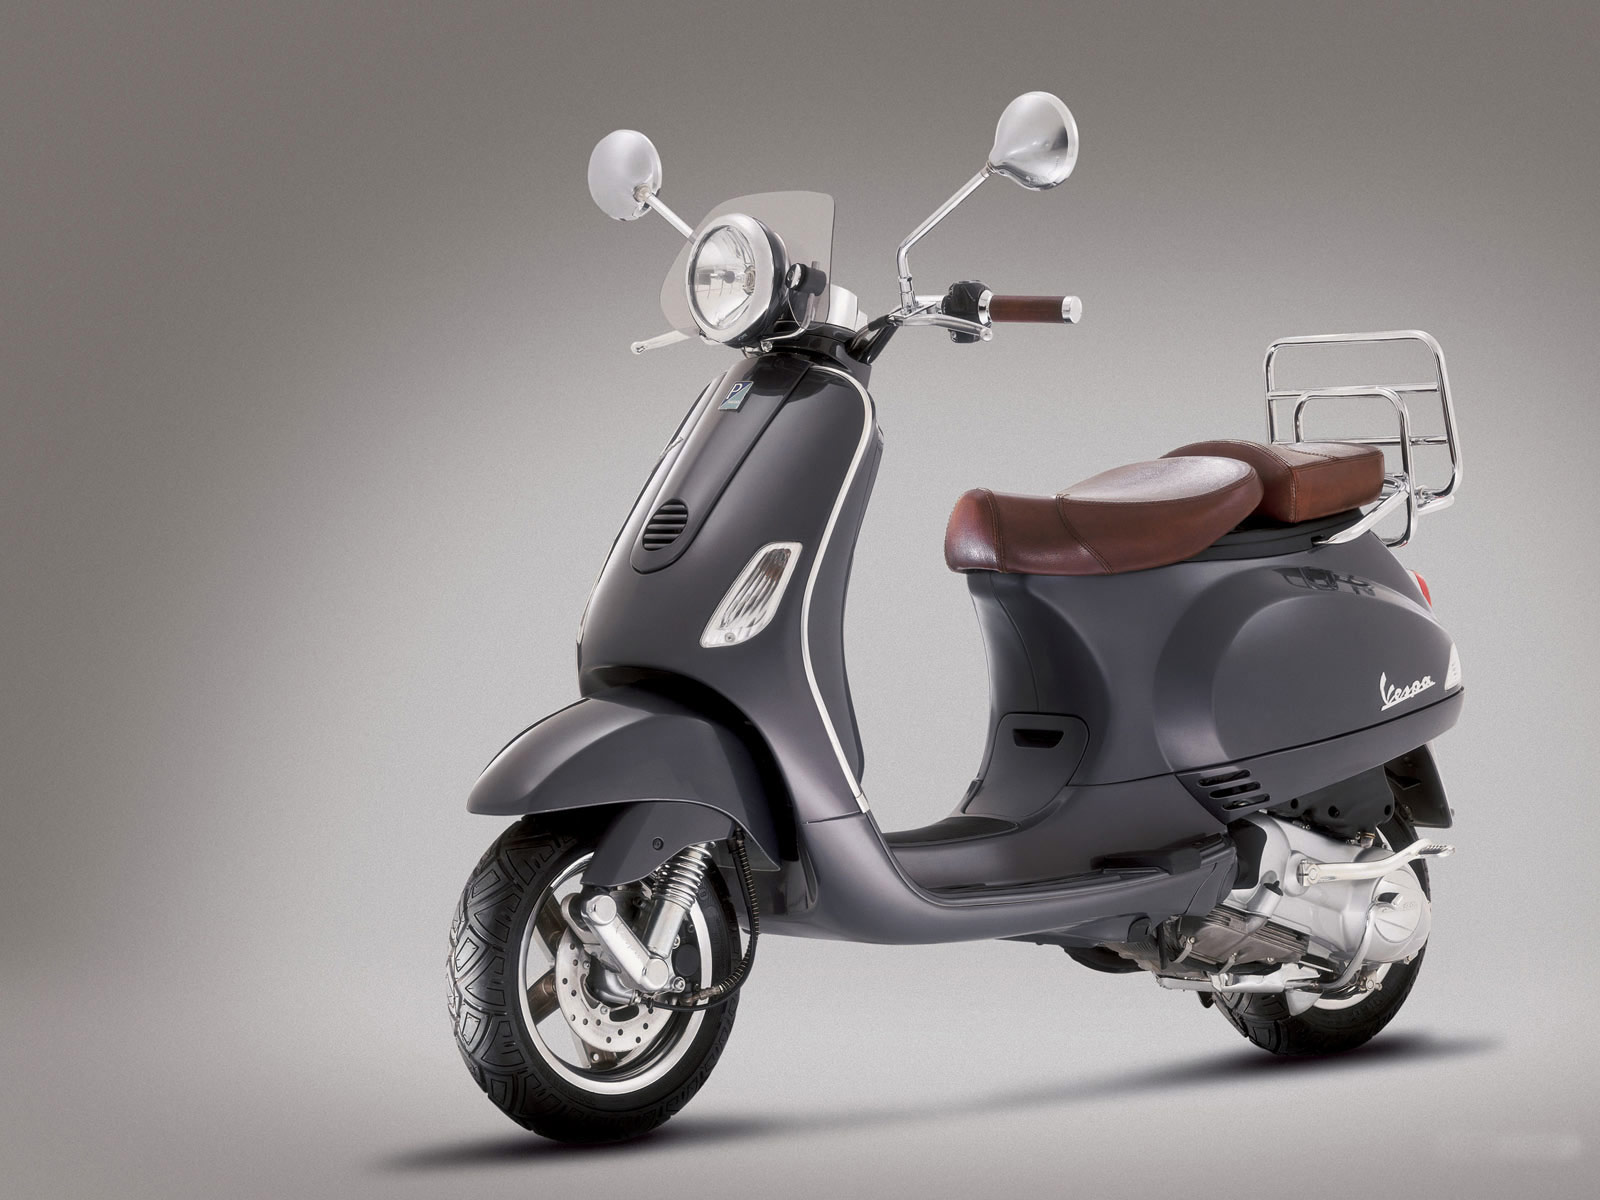 Vespa lxv photo - 2